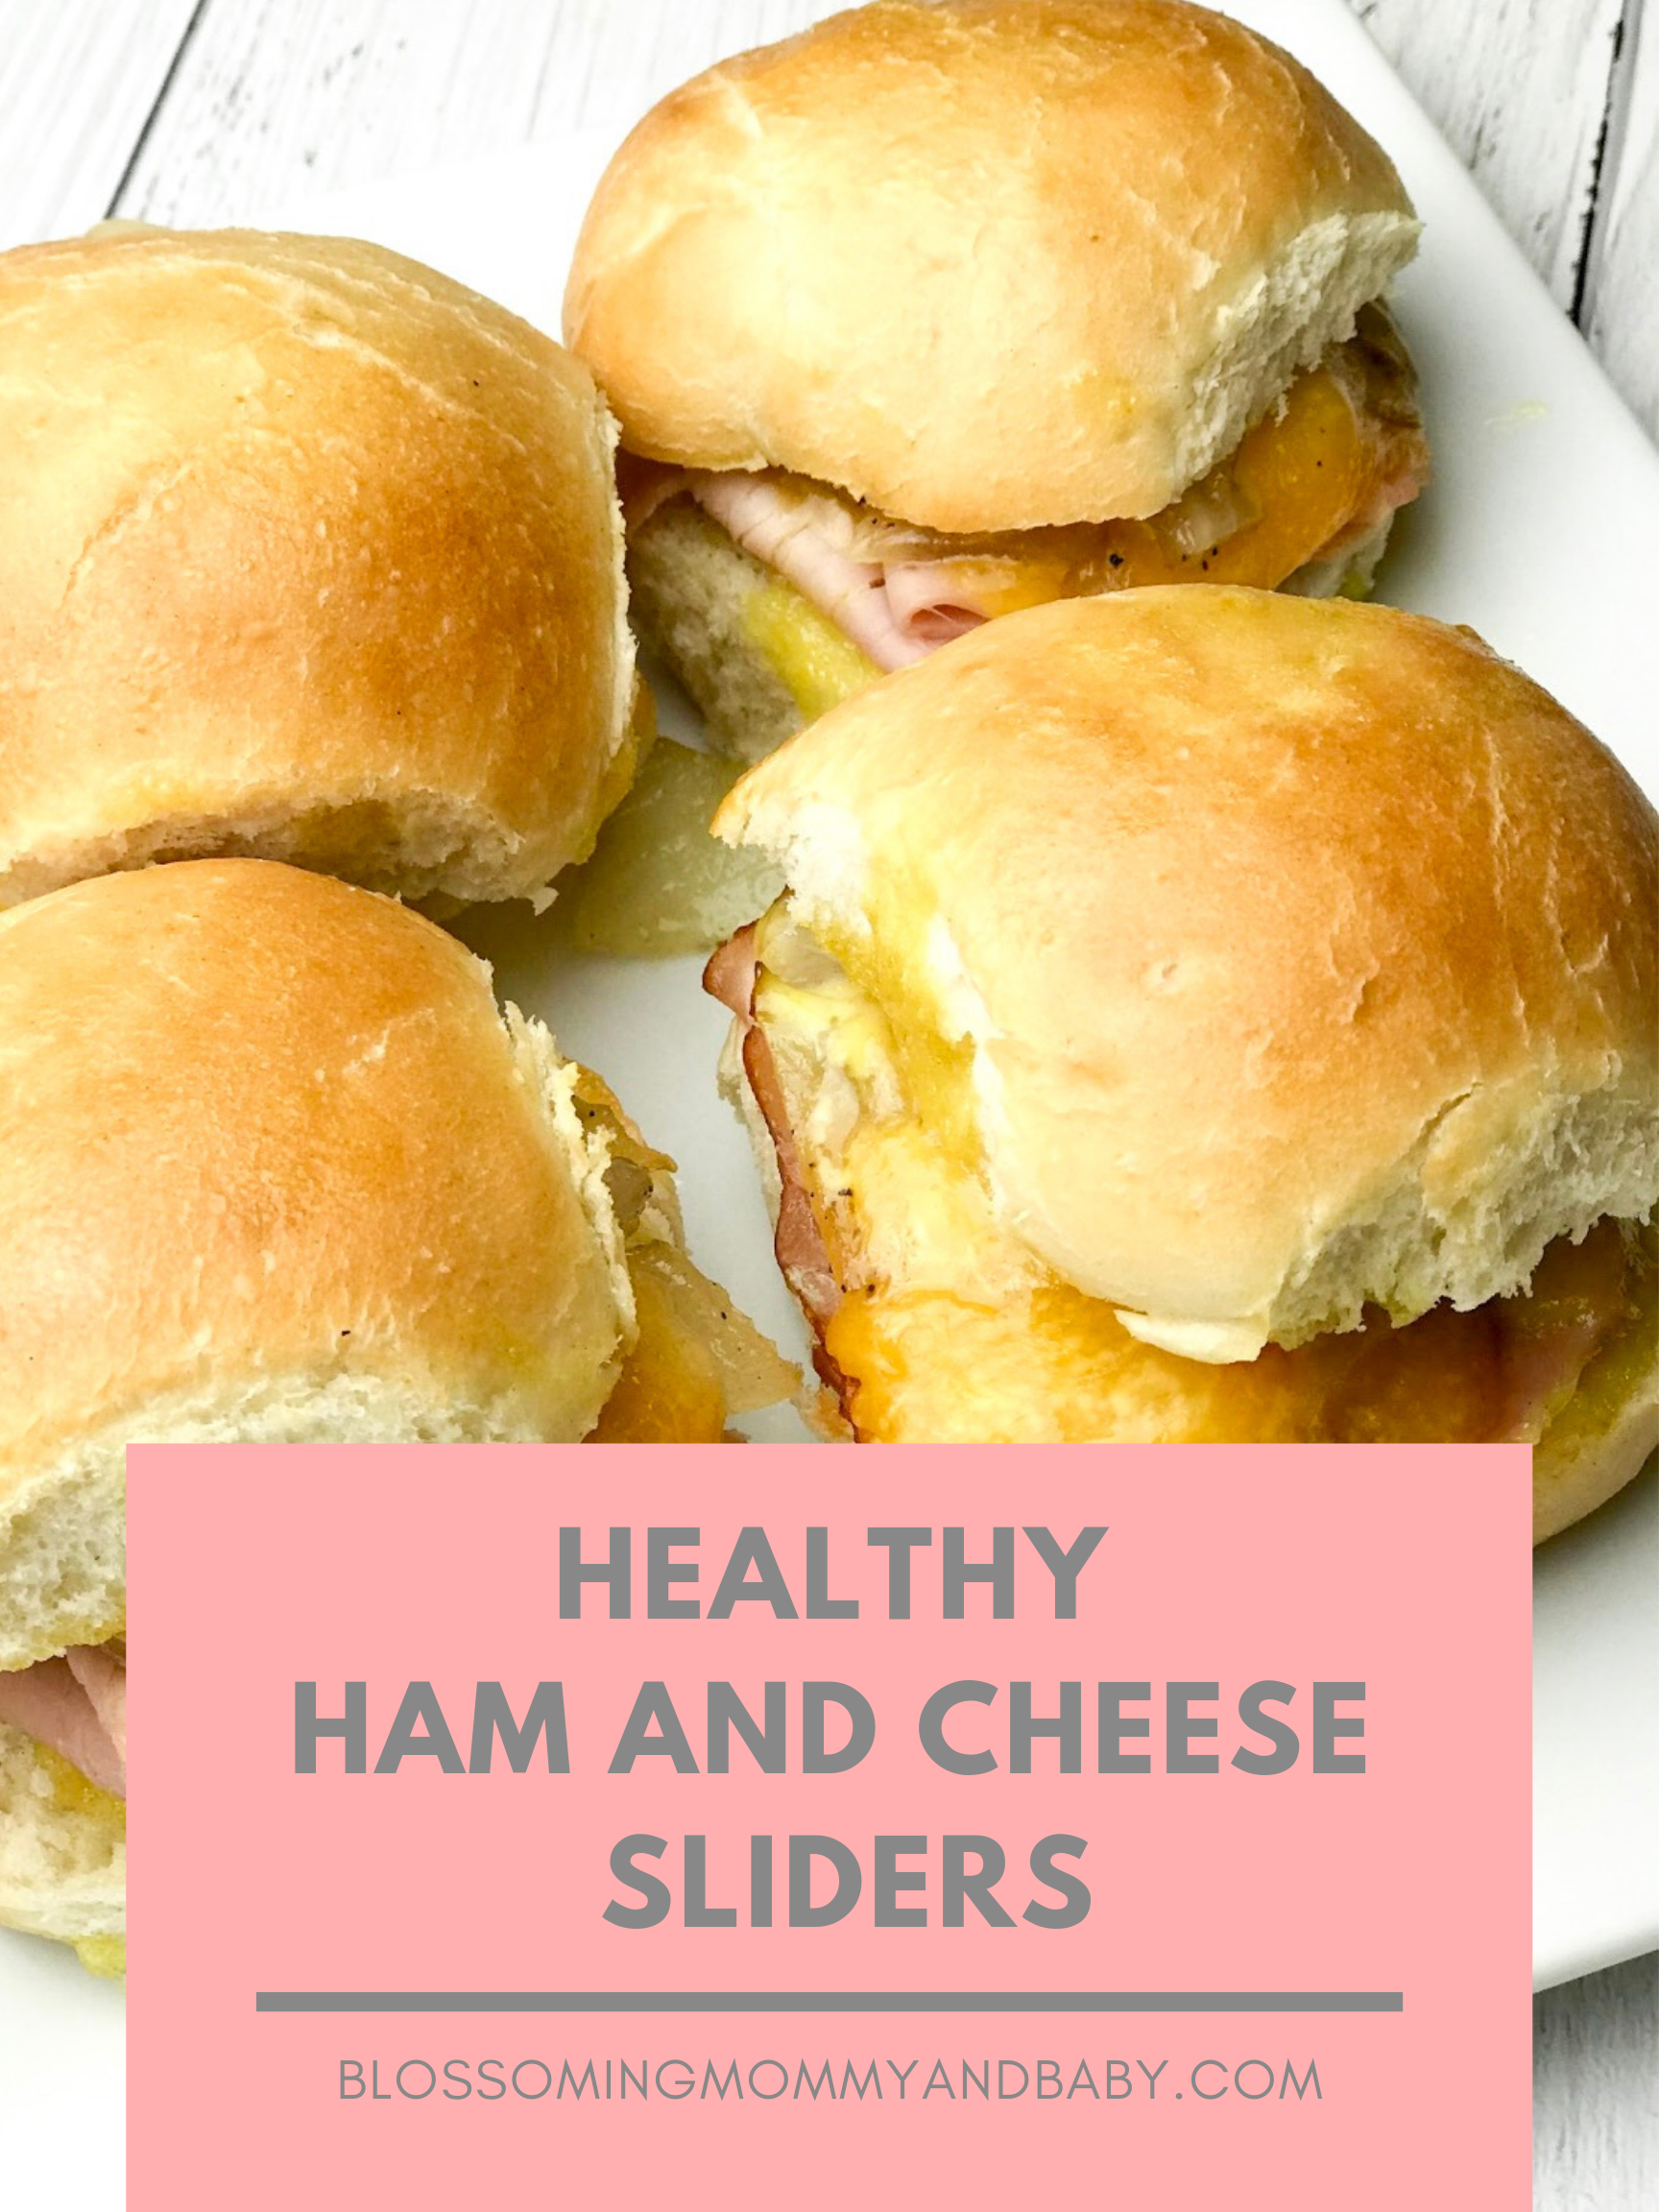 HAM AND CHEESE SLIDERS | Blossoming Mommy and Baby